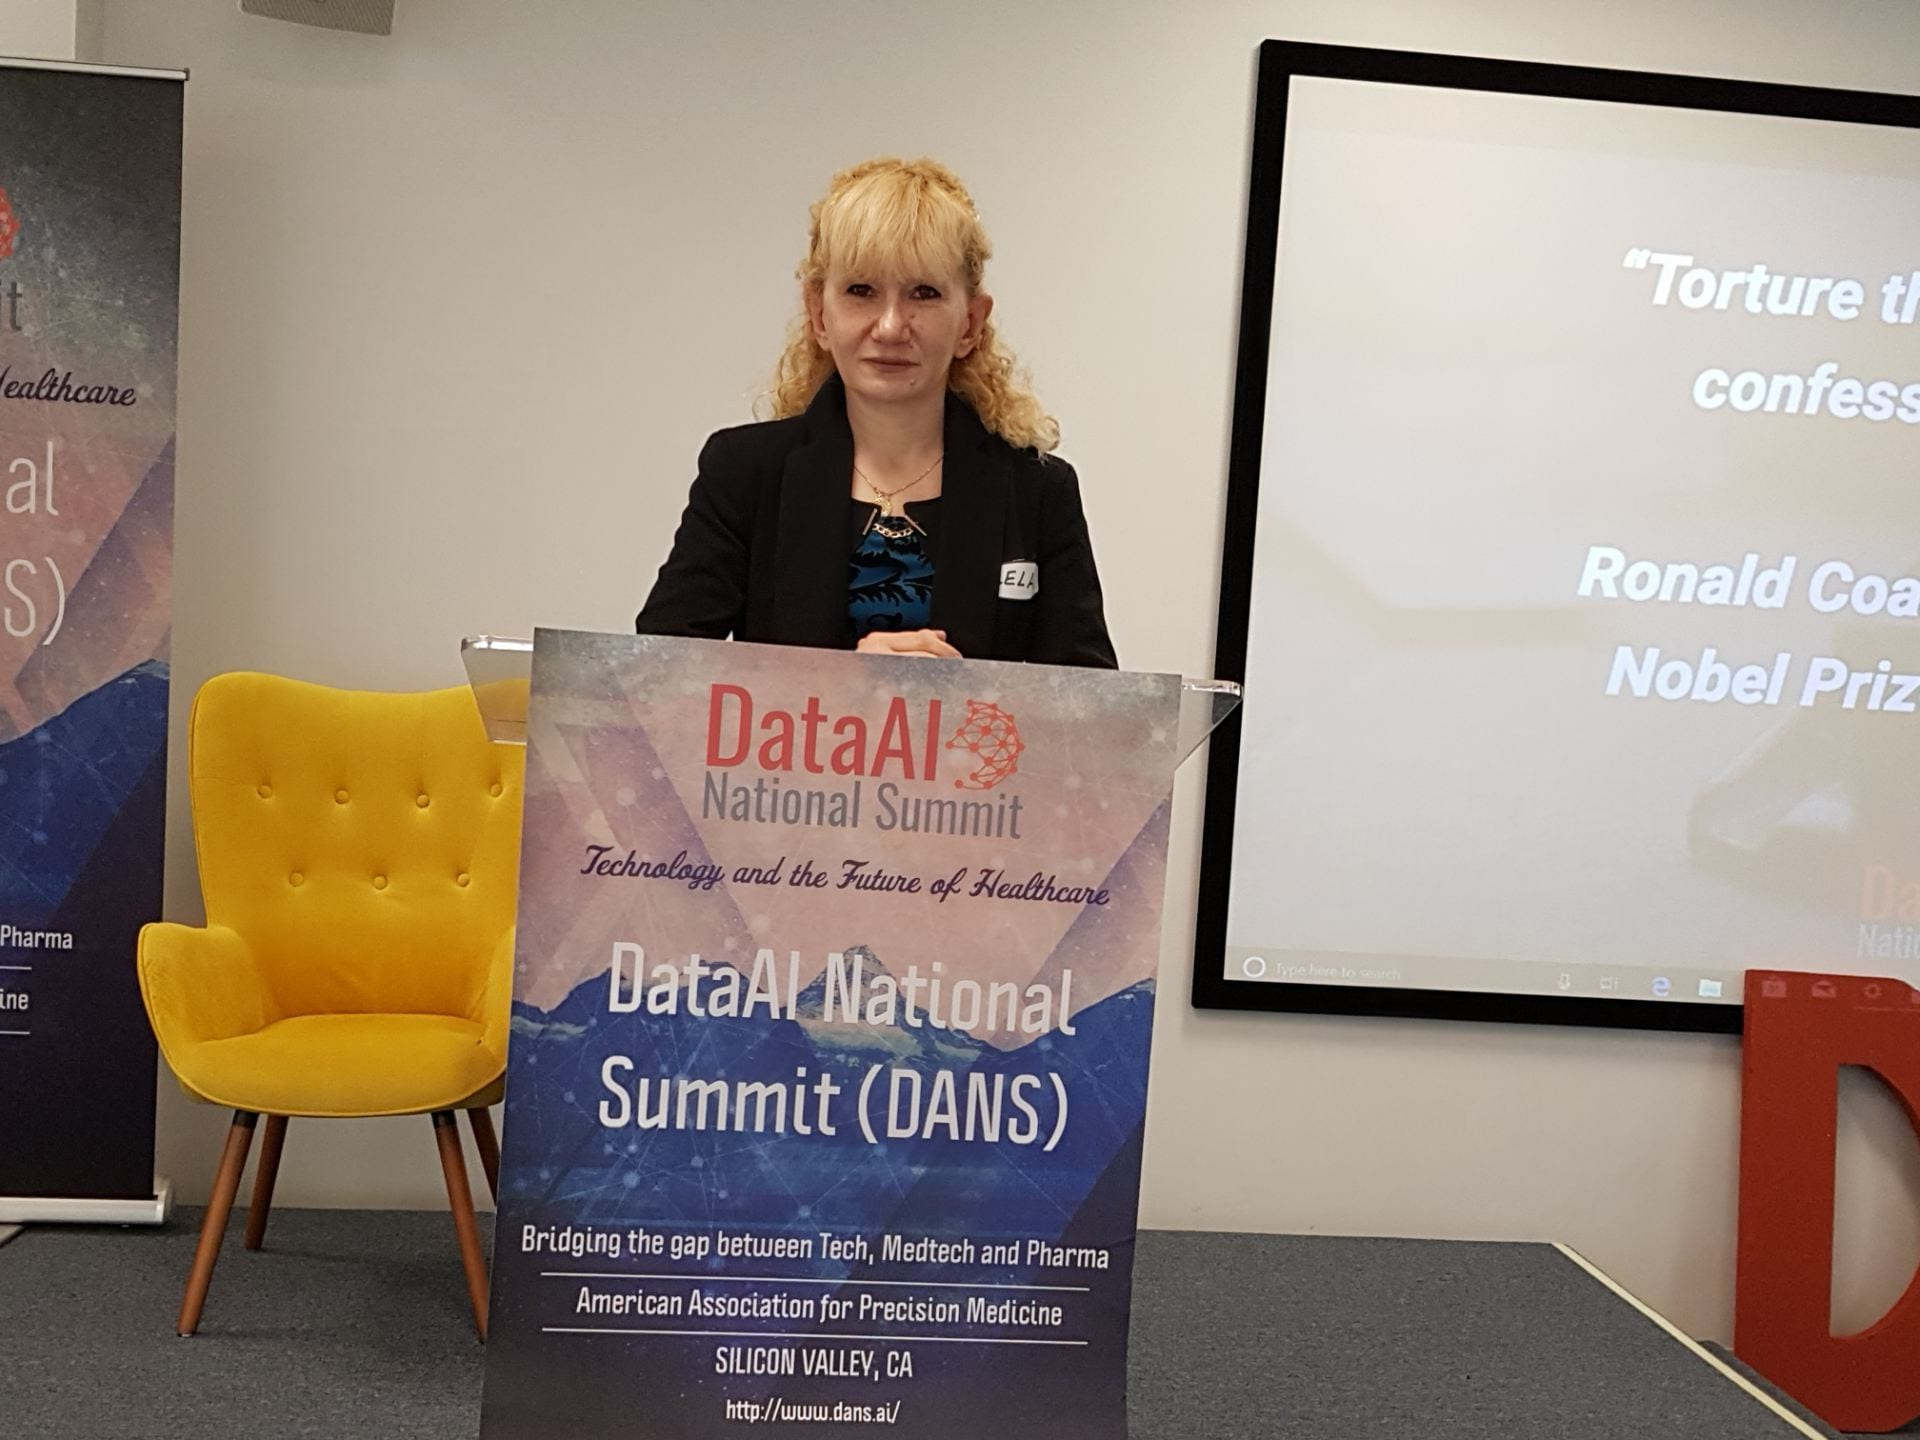 Lela Mirtskhulava was a featured speaker at DataAI National Summit (DANS), Silicon Valley organized by American Association of Precision Medicine and presented the results of the project she has been working since arriving at San Jose State as a Fulbright Scholar.